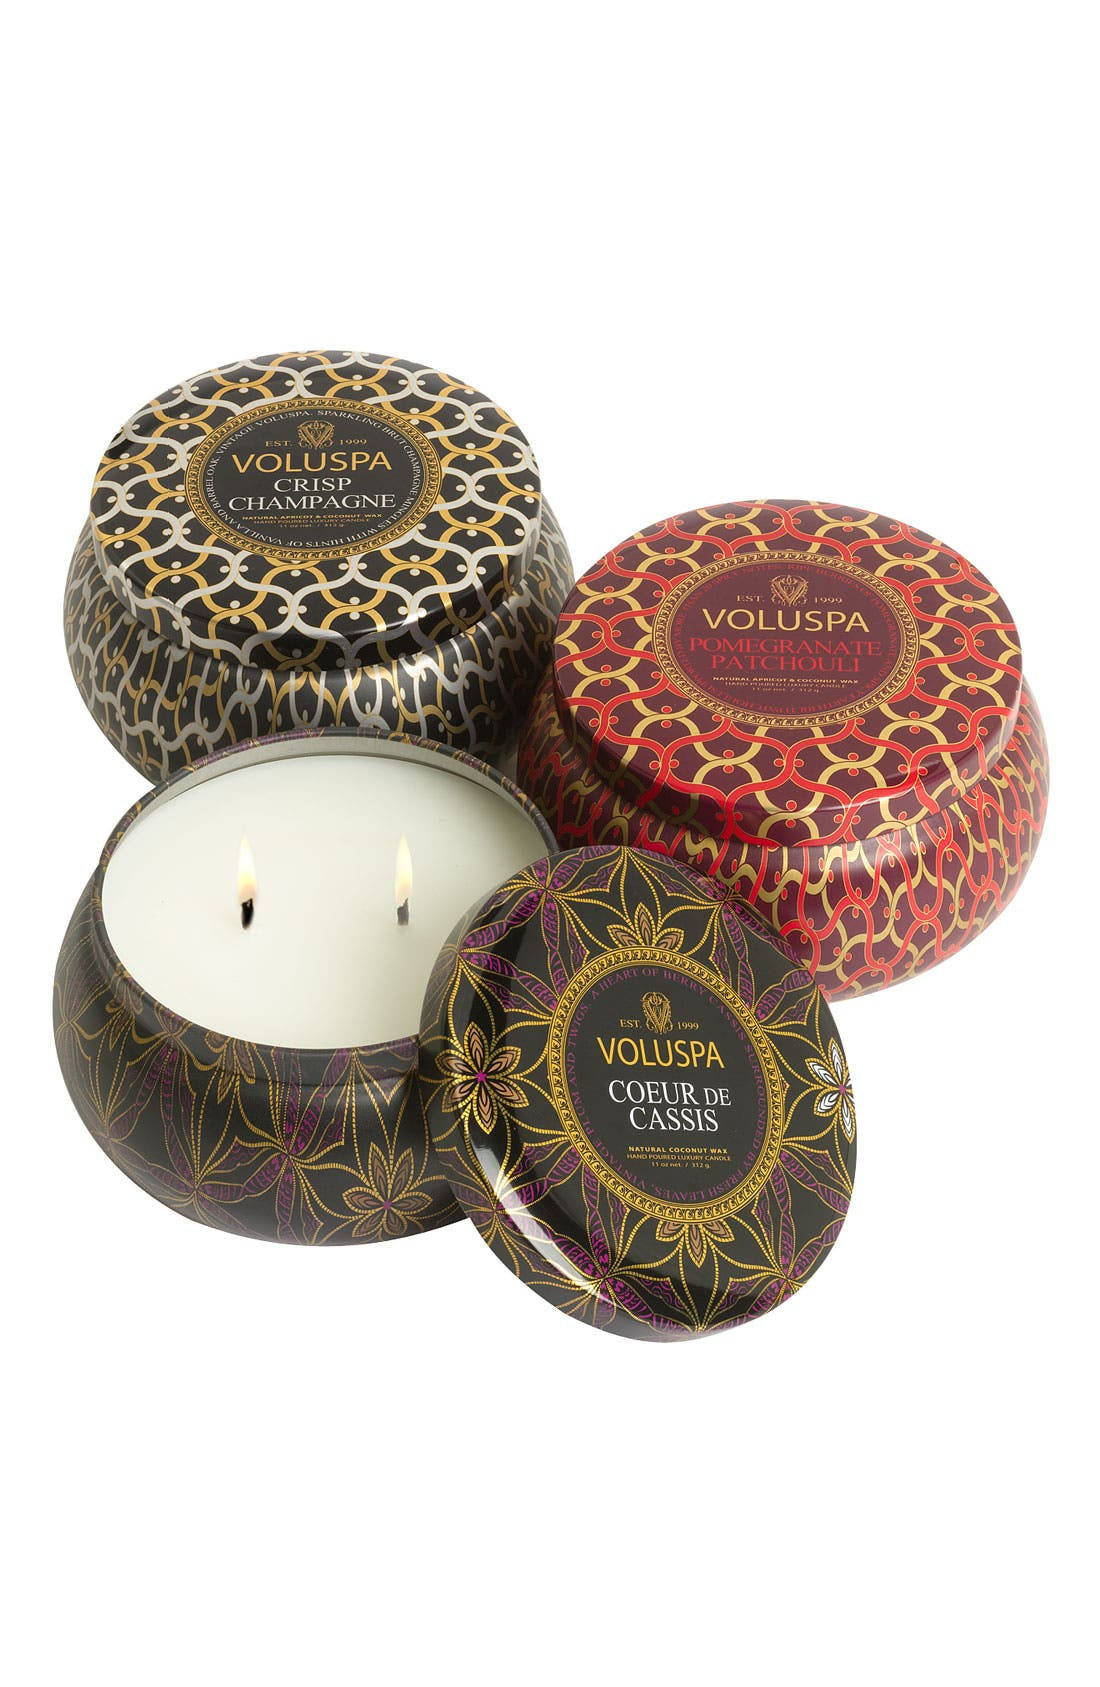 Alternate Image 1 Selected - Voluspa 'Maison Collections' Anniversary Candle Trio ($48 Value)